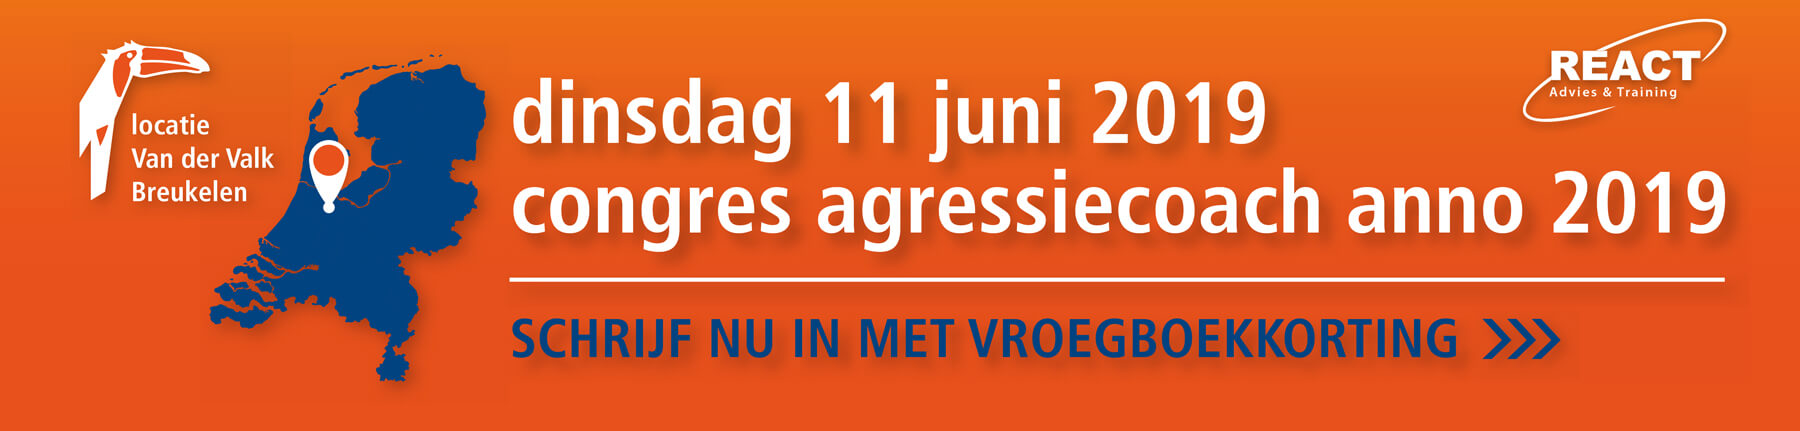 Congres agressiecoach 2019